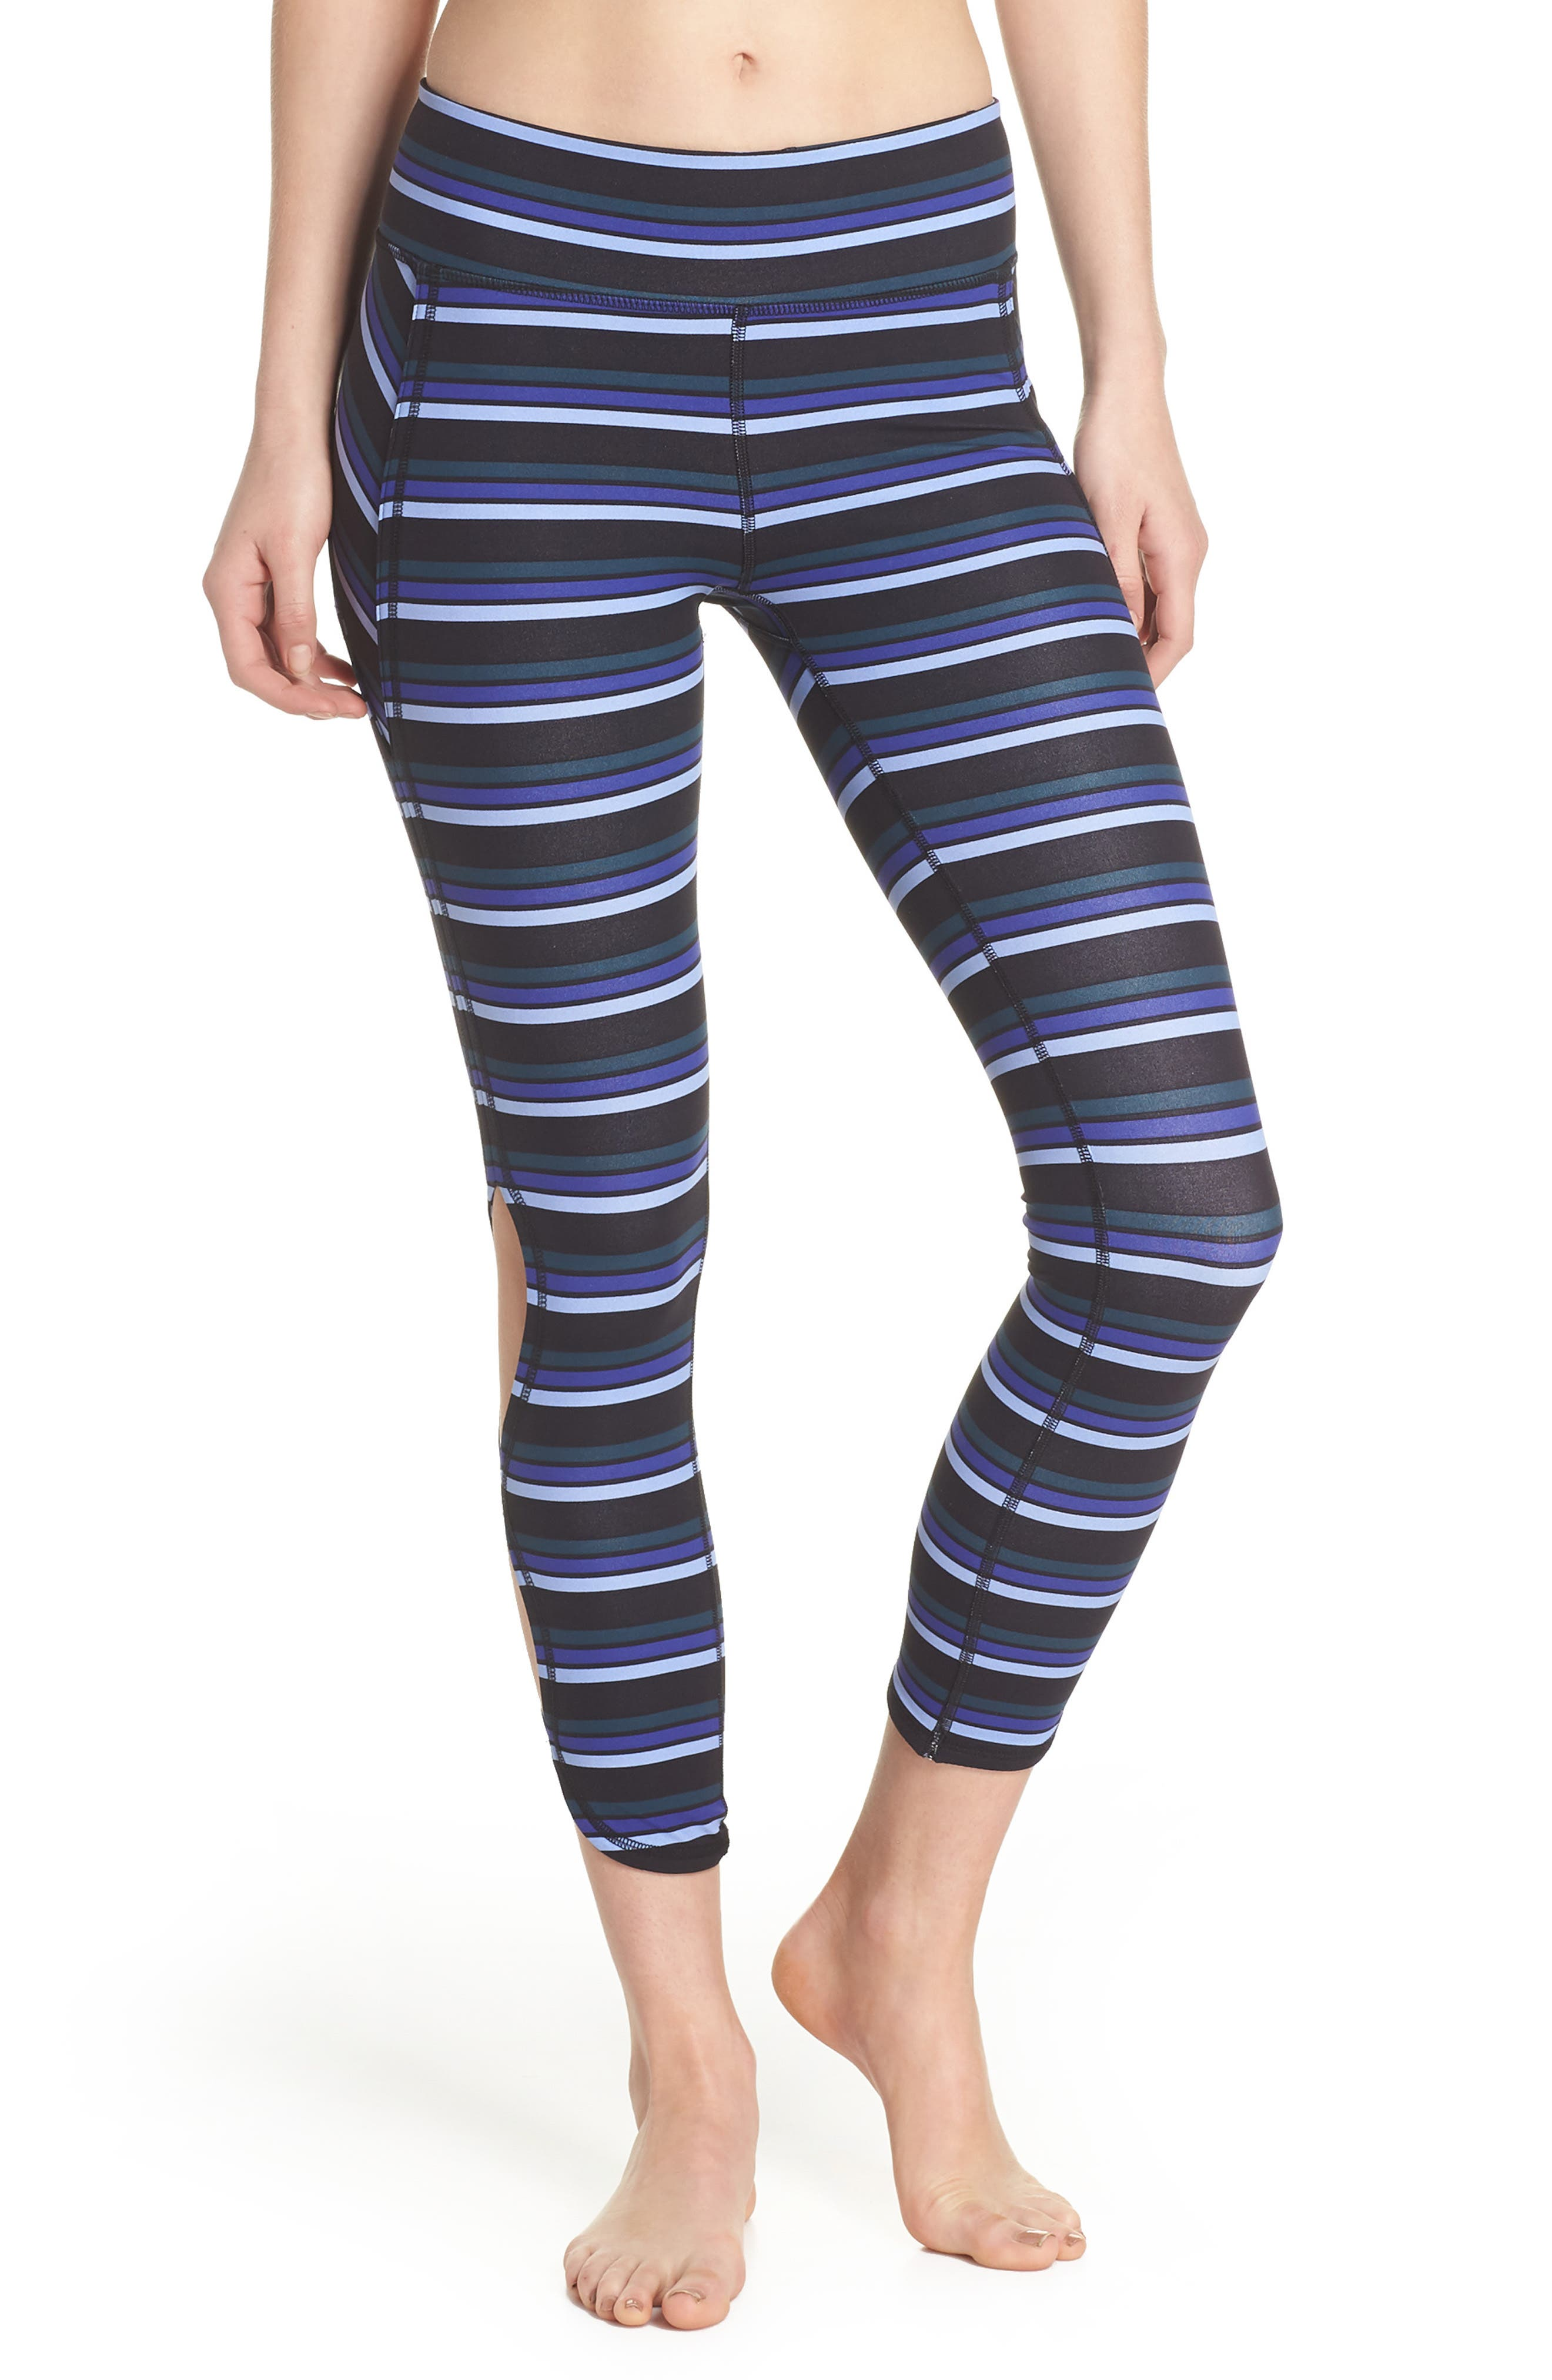 FREE PEOPLE MOVEMENT Stripe Infinity Leggings, Main, color, 001